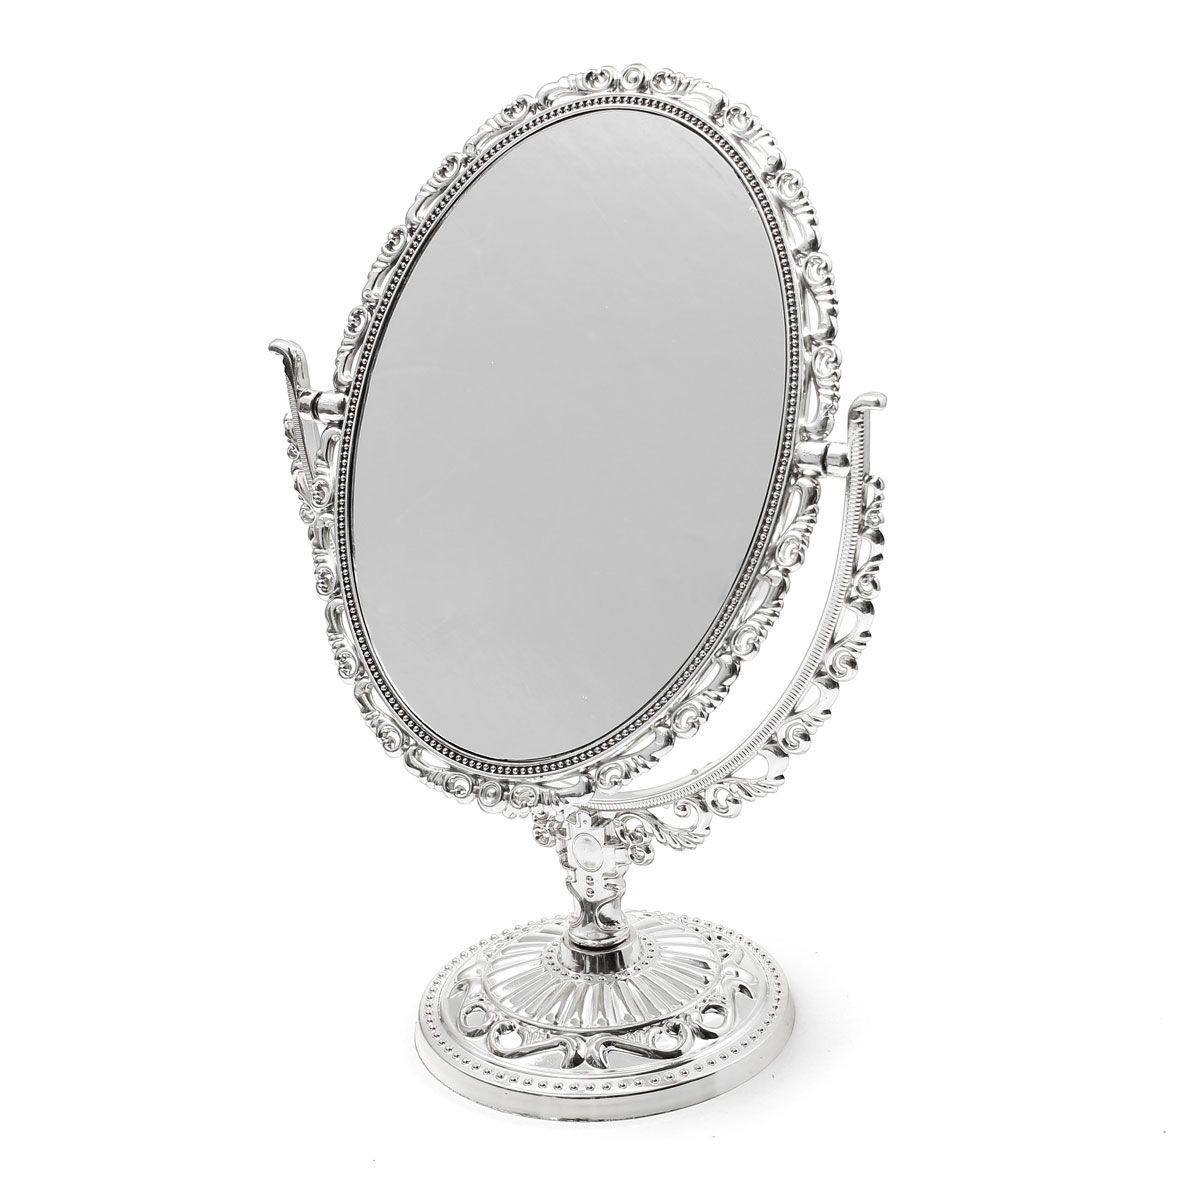 Vanity Make Up Cosmetic Table Bathroom Mirror On Foot Stand Handhold Victorian Style Dual Sided Swivel Makeup Mirror Regular&x2